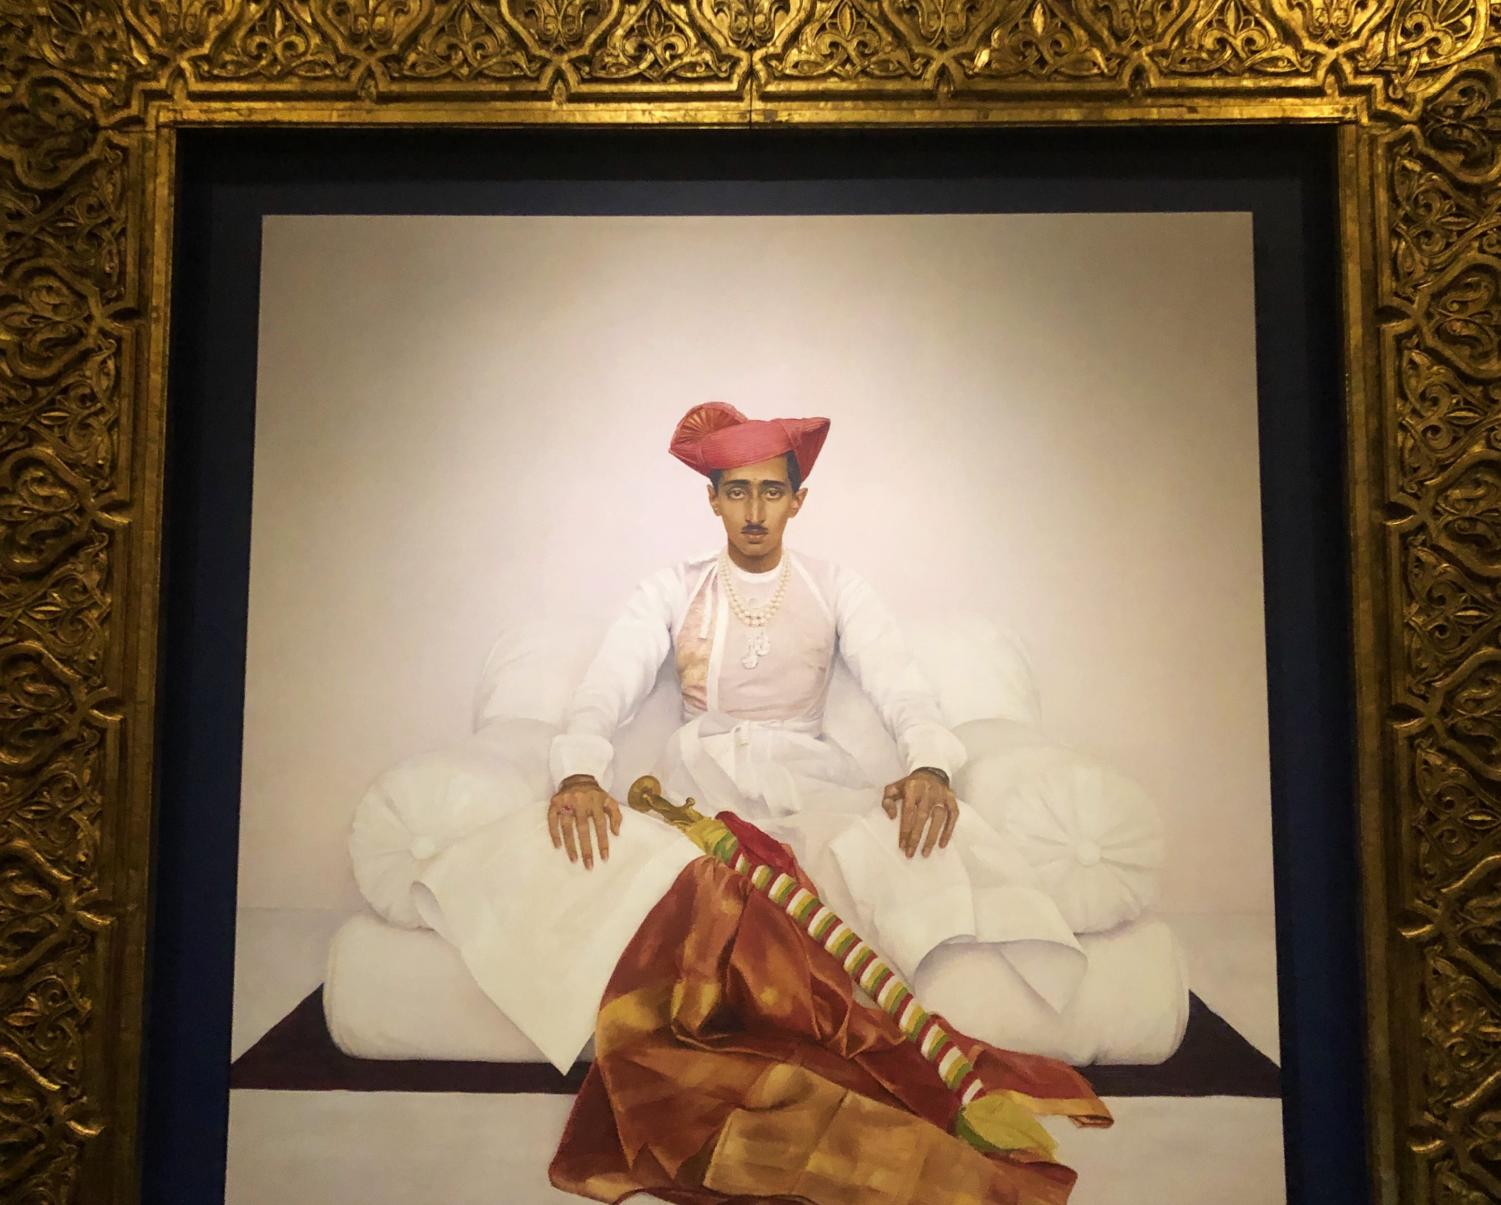 Paining of the Maharaja of Indore, 1908-1961, displayed in the museum.